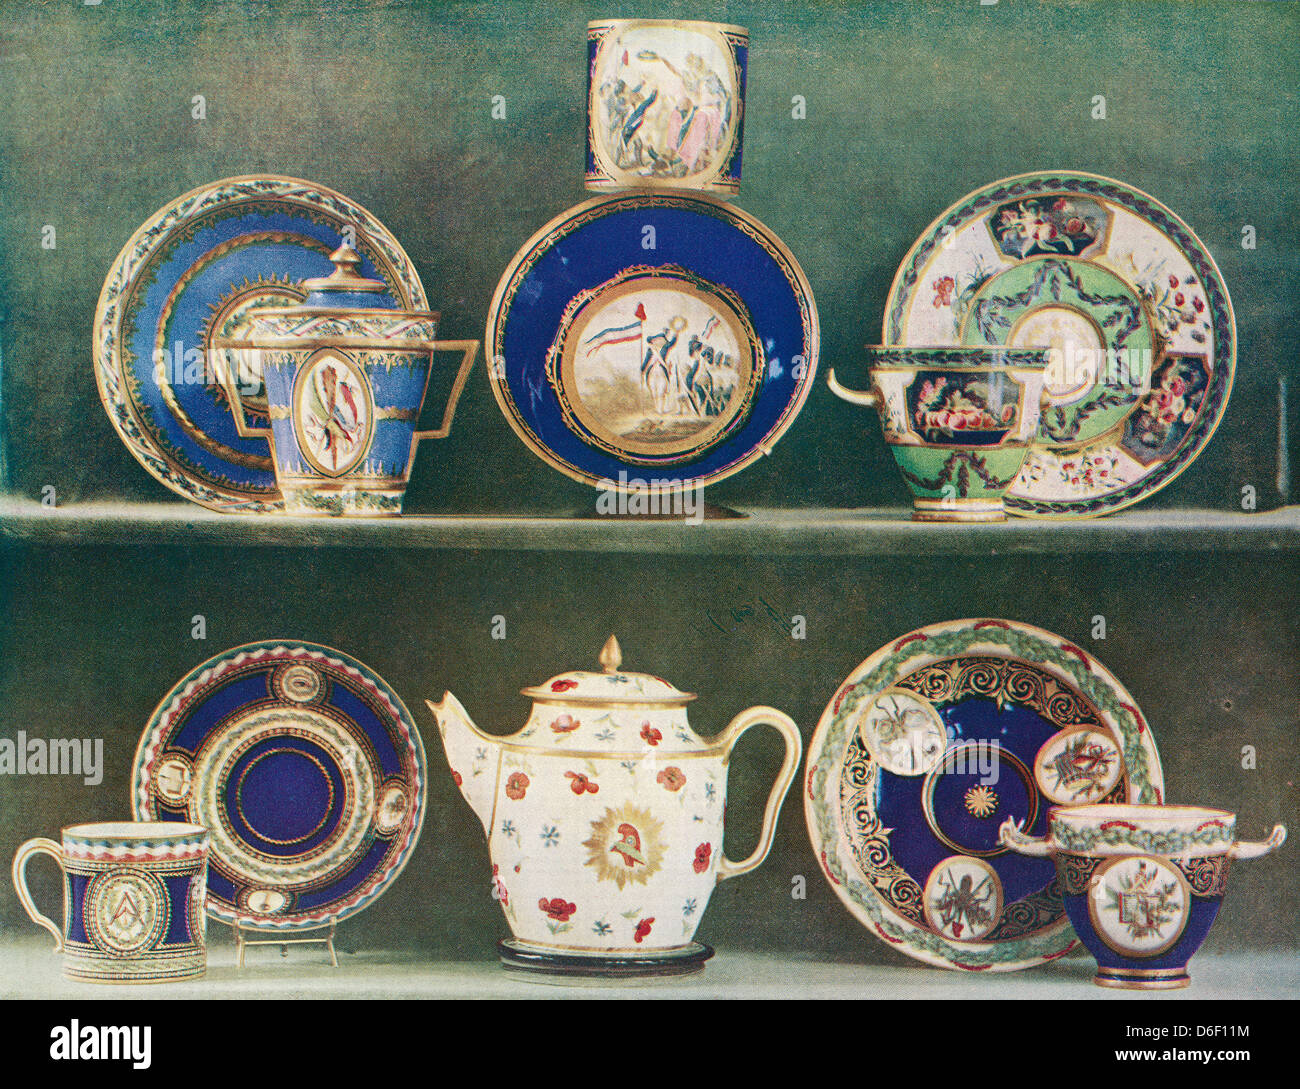 Sevres porcelain decorated with emblems of the French Revolution. - Stock Image